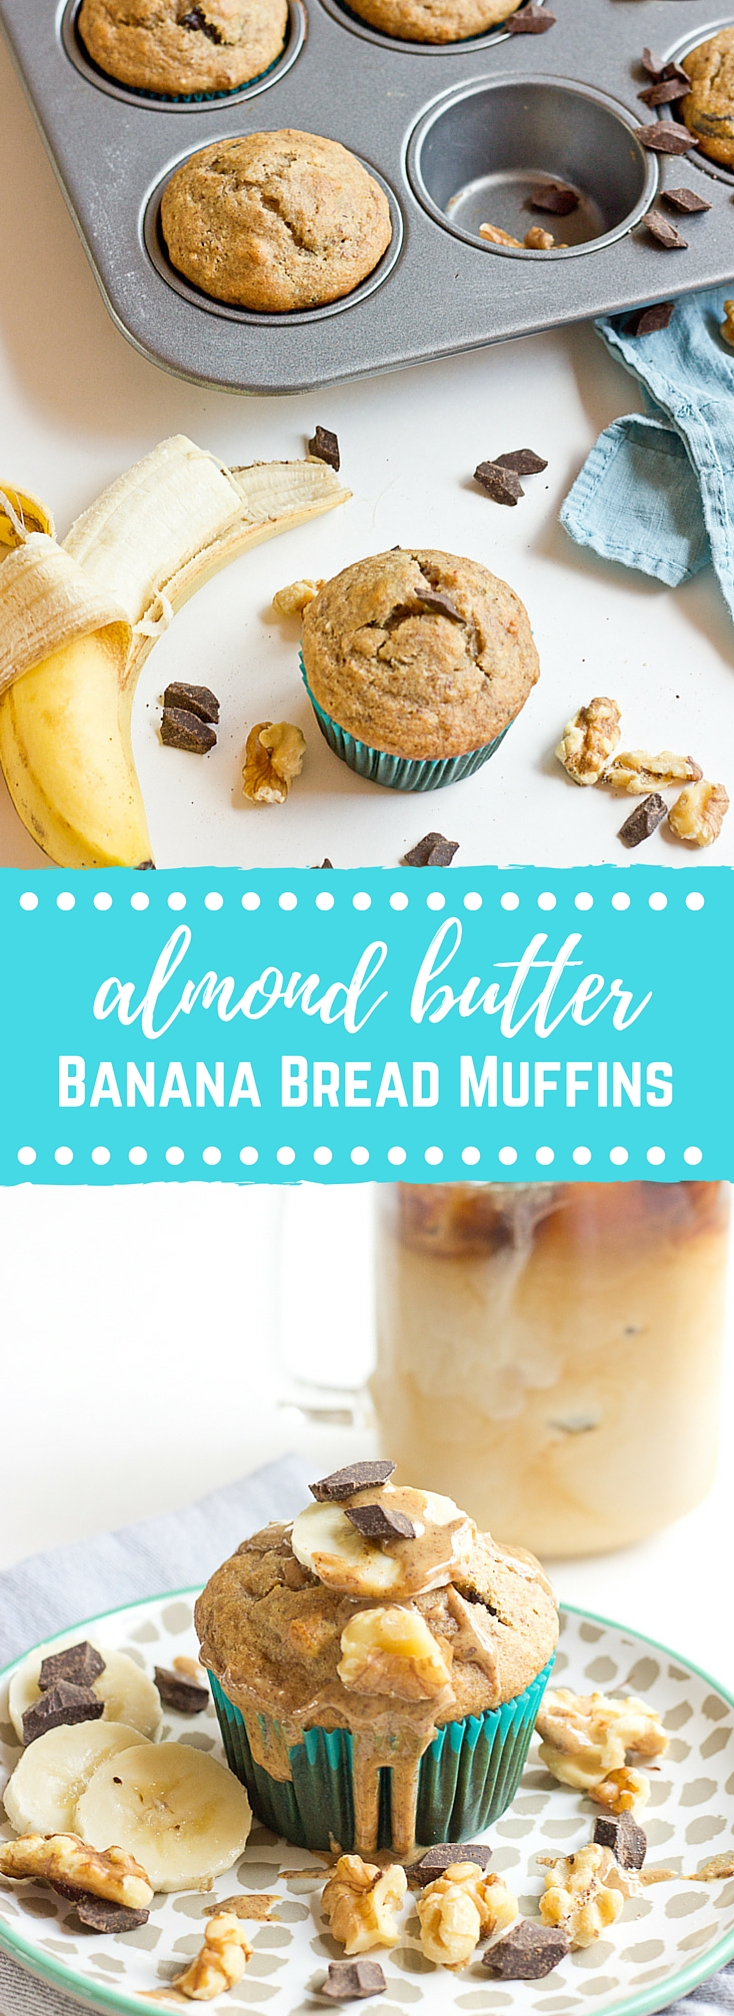 These Almond Butter Banana Bread Muffins are so moist and just straight up YUM!